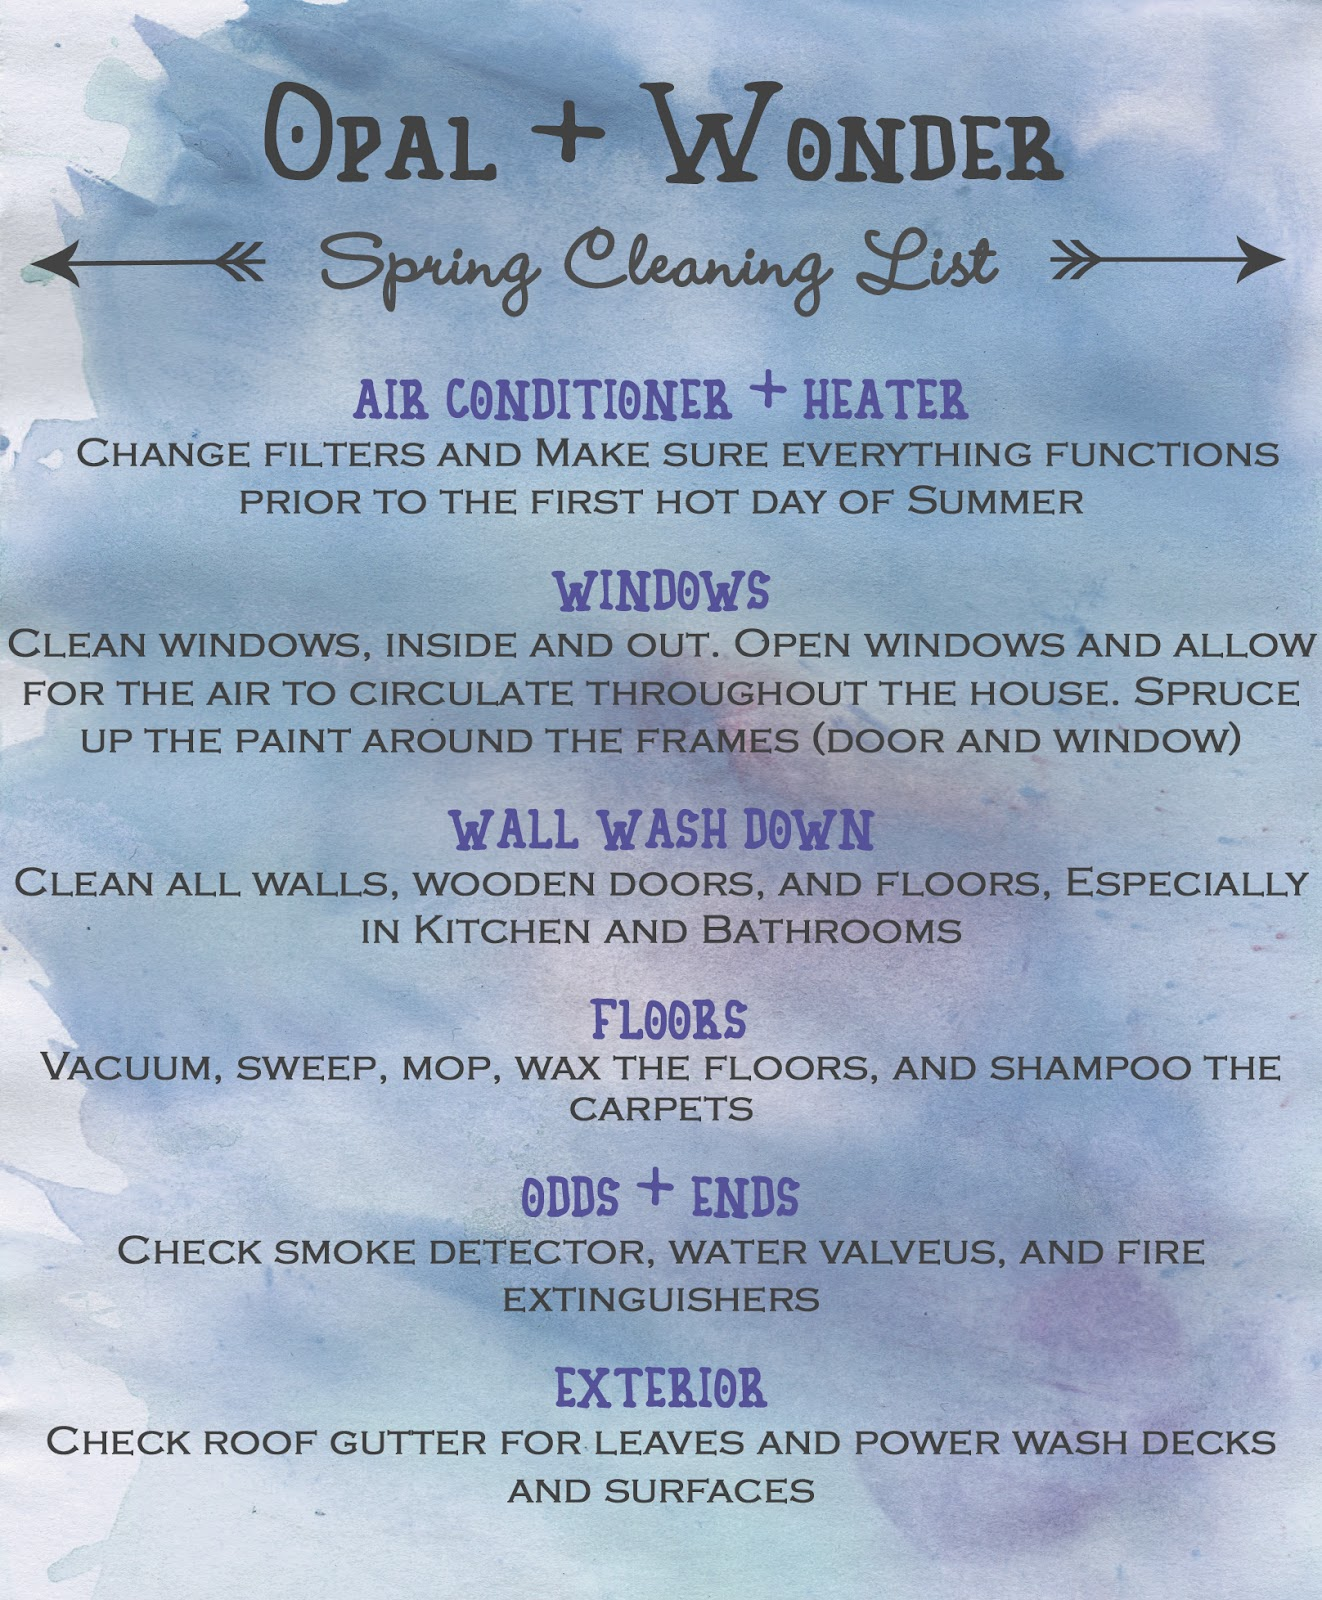 Opal + Wonder: Spring Cleaning: To Do List